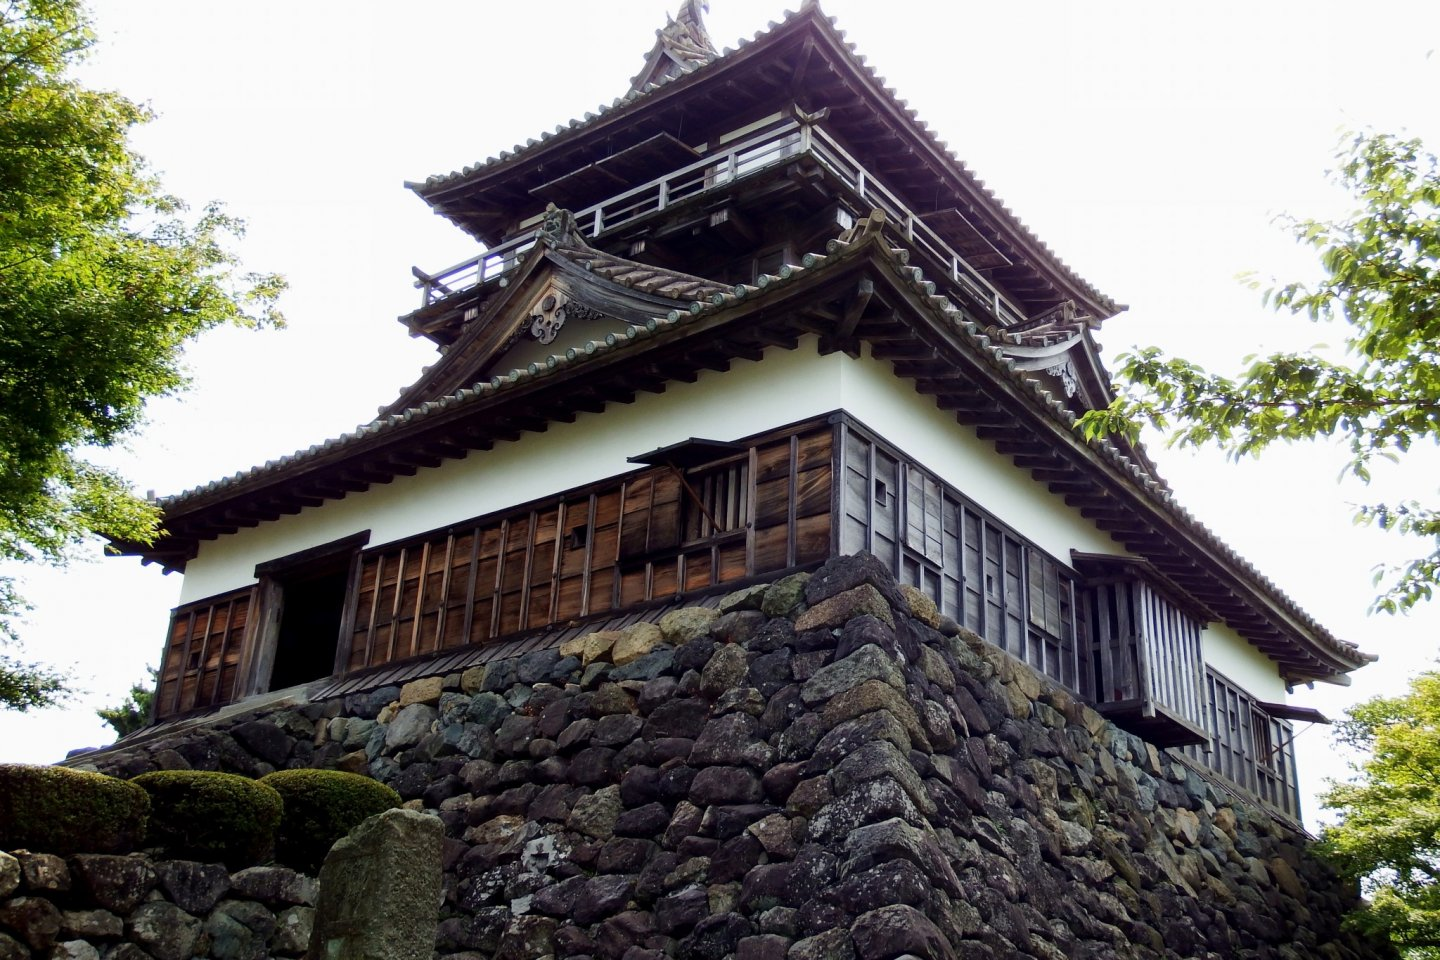 Maruoka Castle. This is the oldest wooden castle that still stands in Japan, and was originally built in 1576